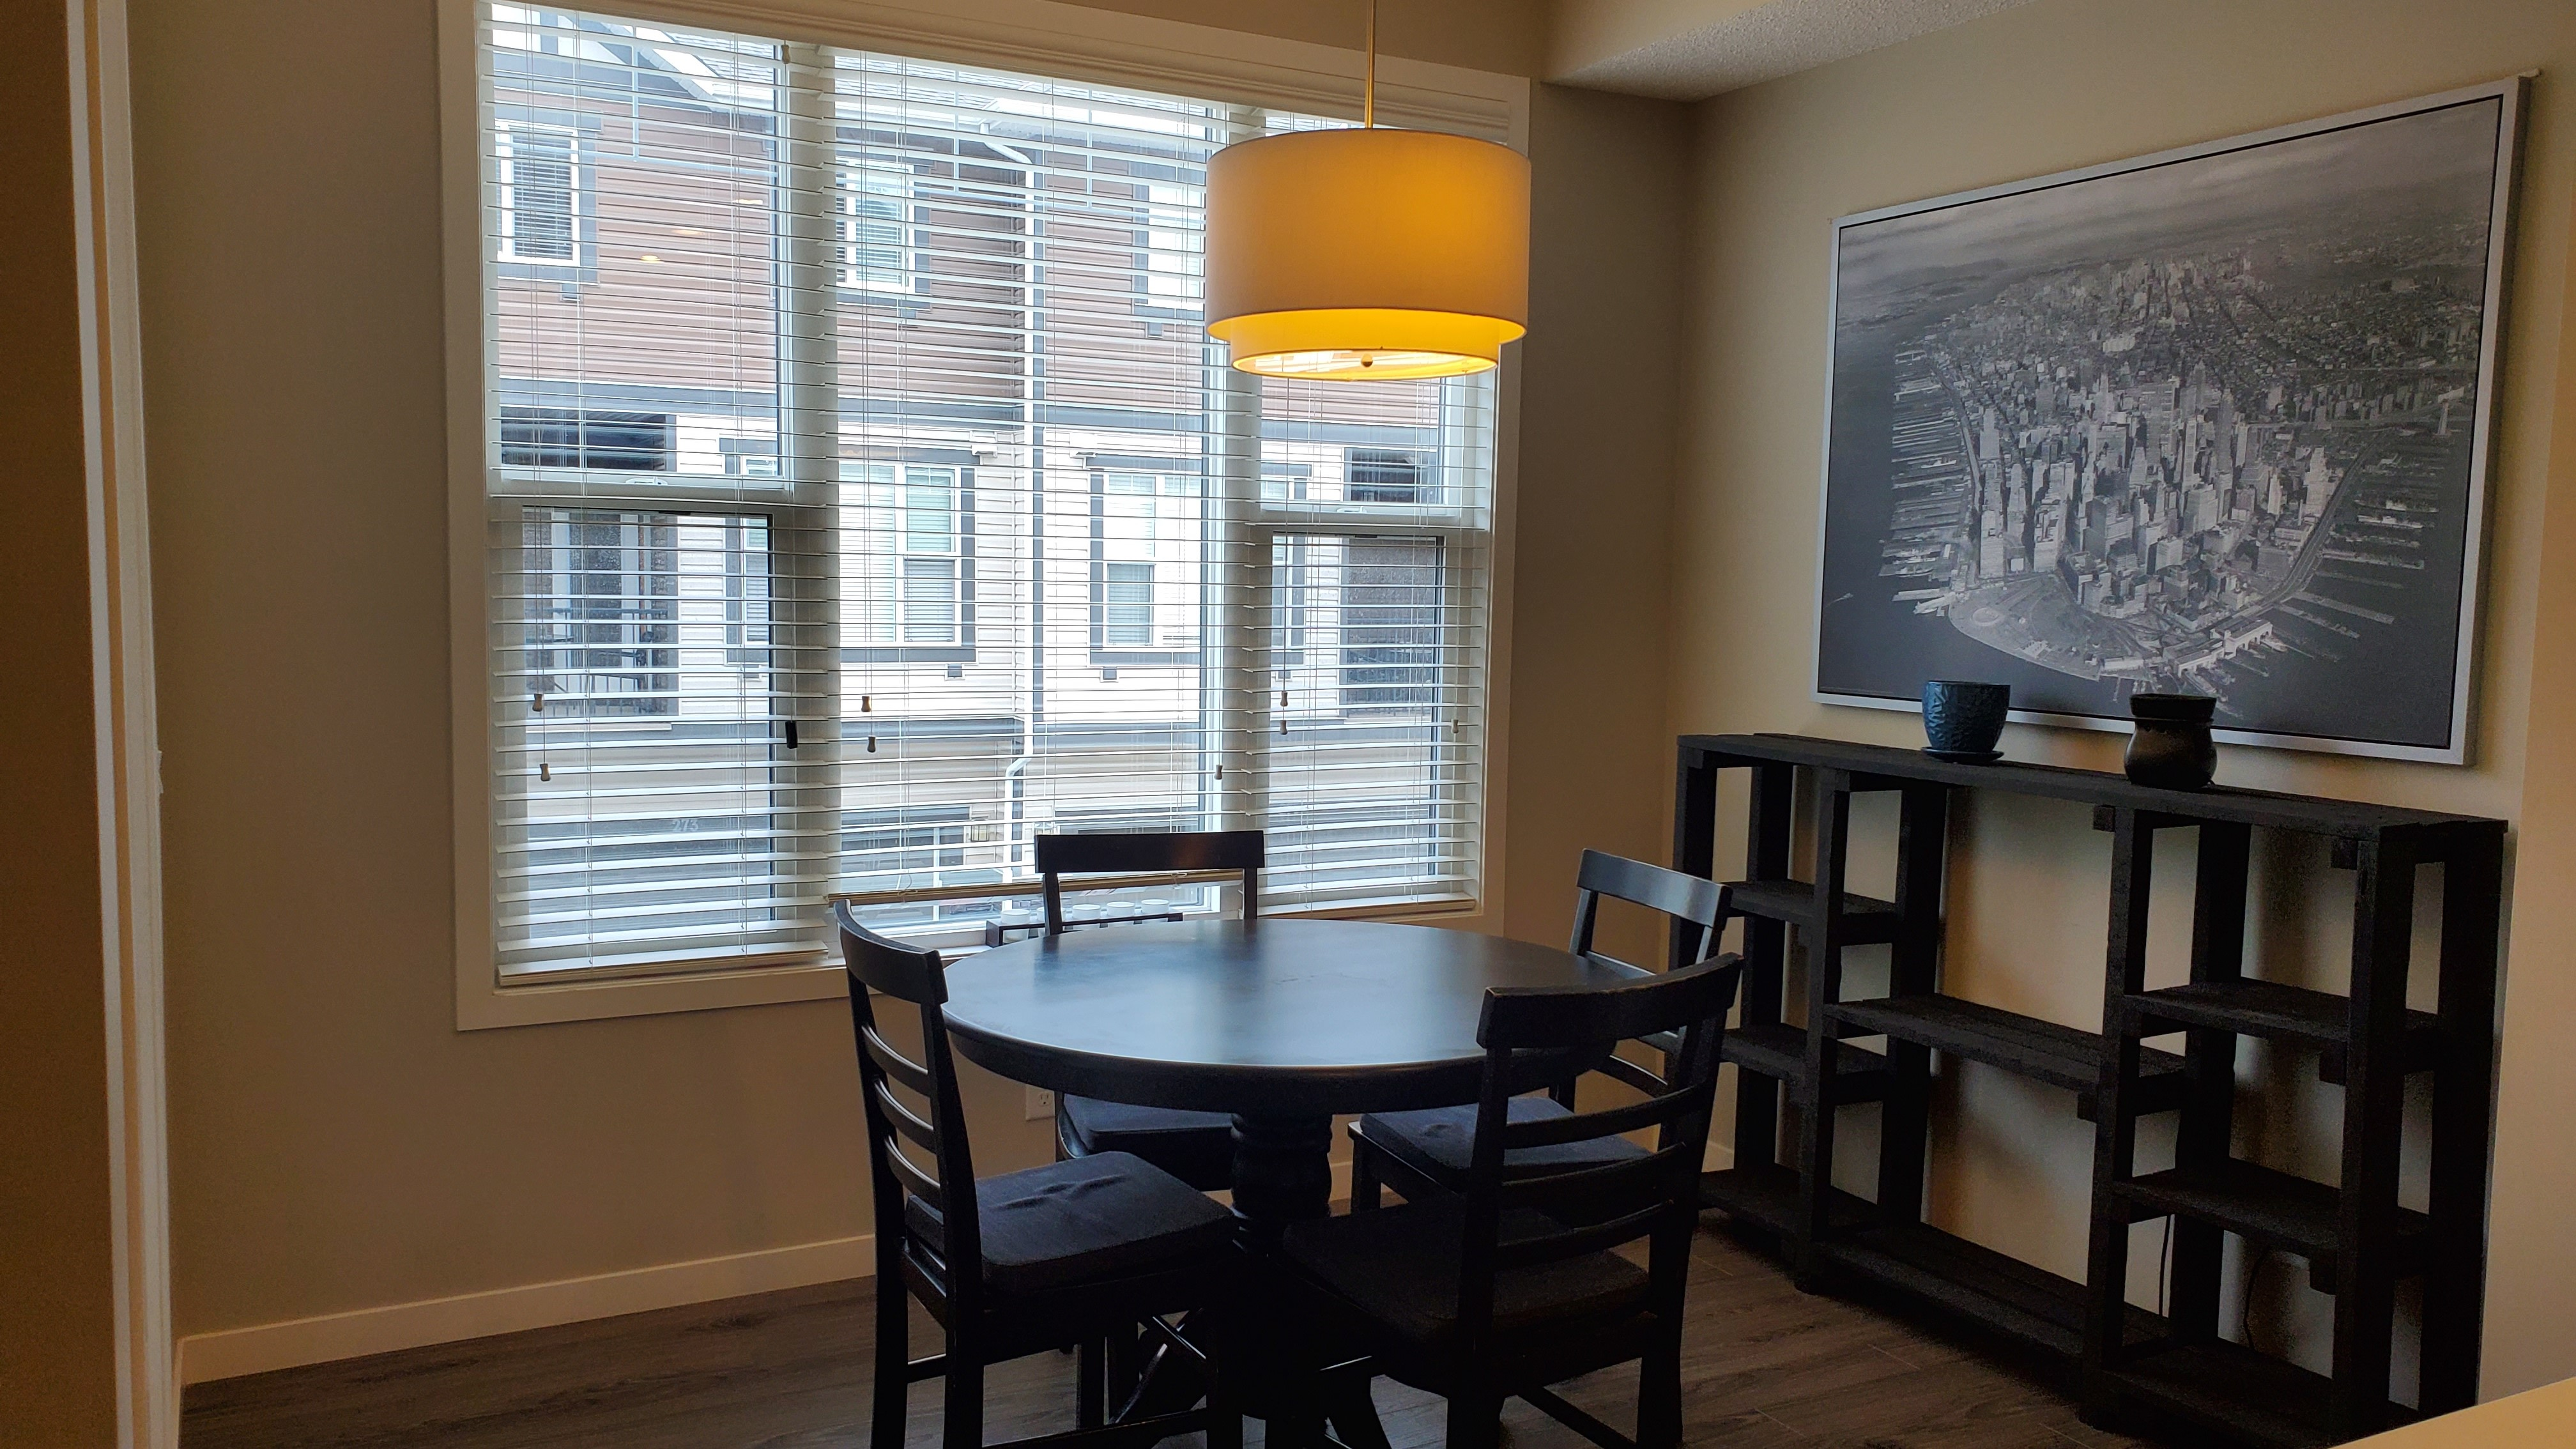 3 Bedroom Townhouse for Rent in New Brighton